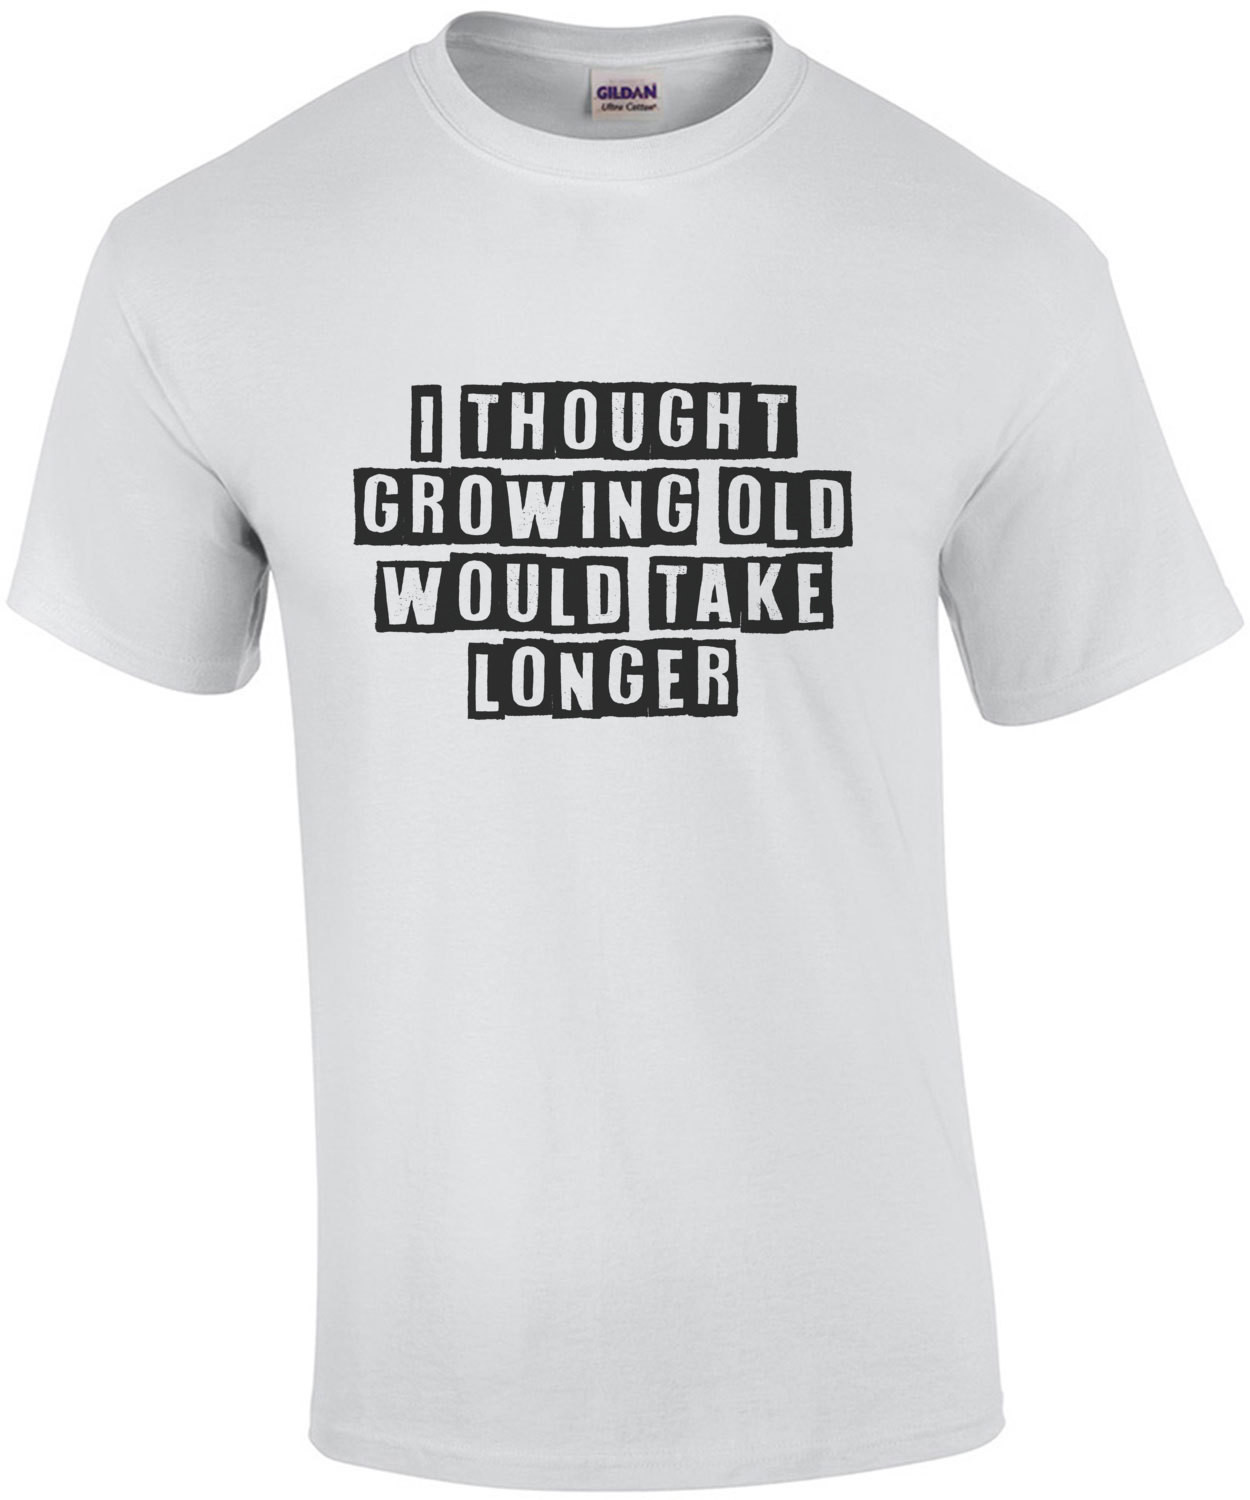 I thought growing old would take longer - funny t-shirt